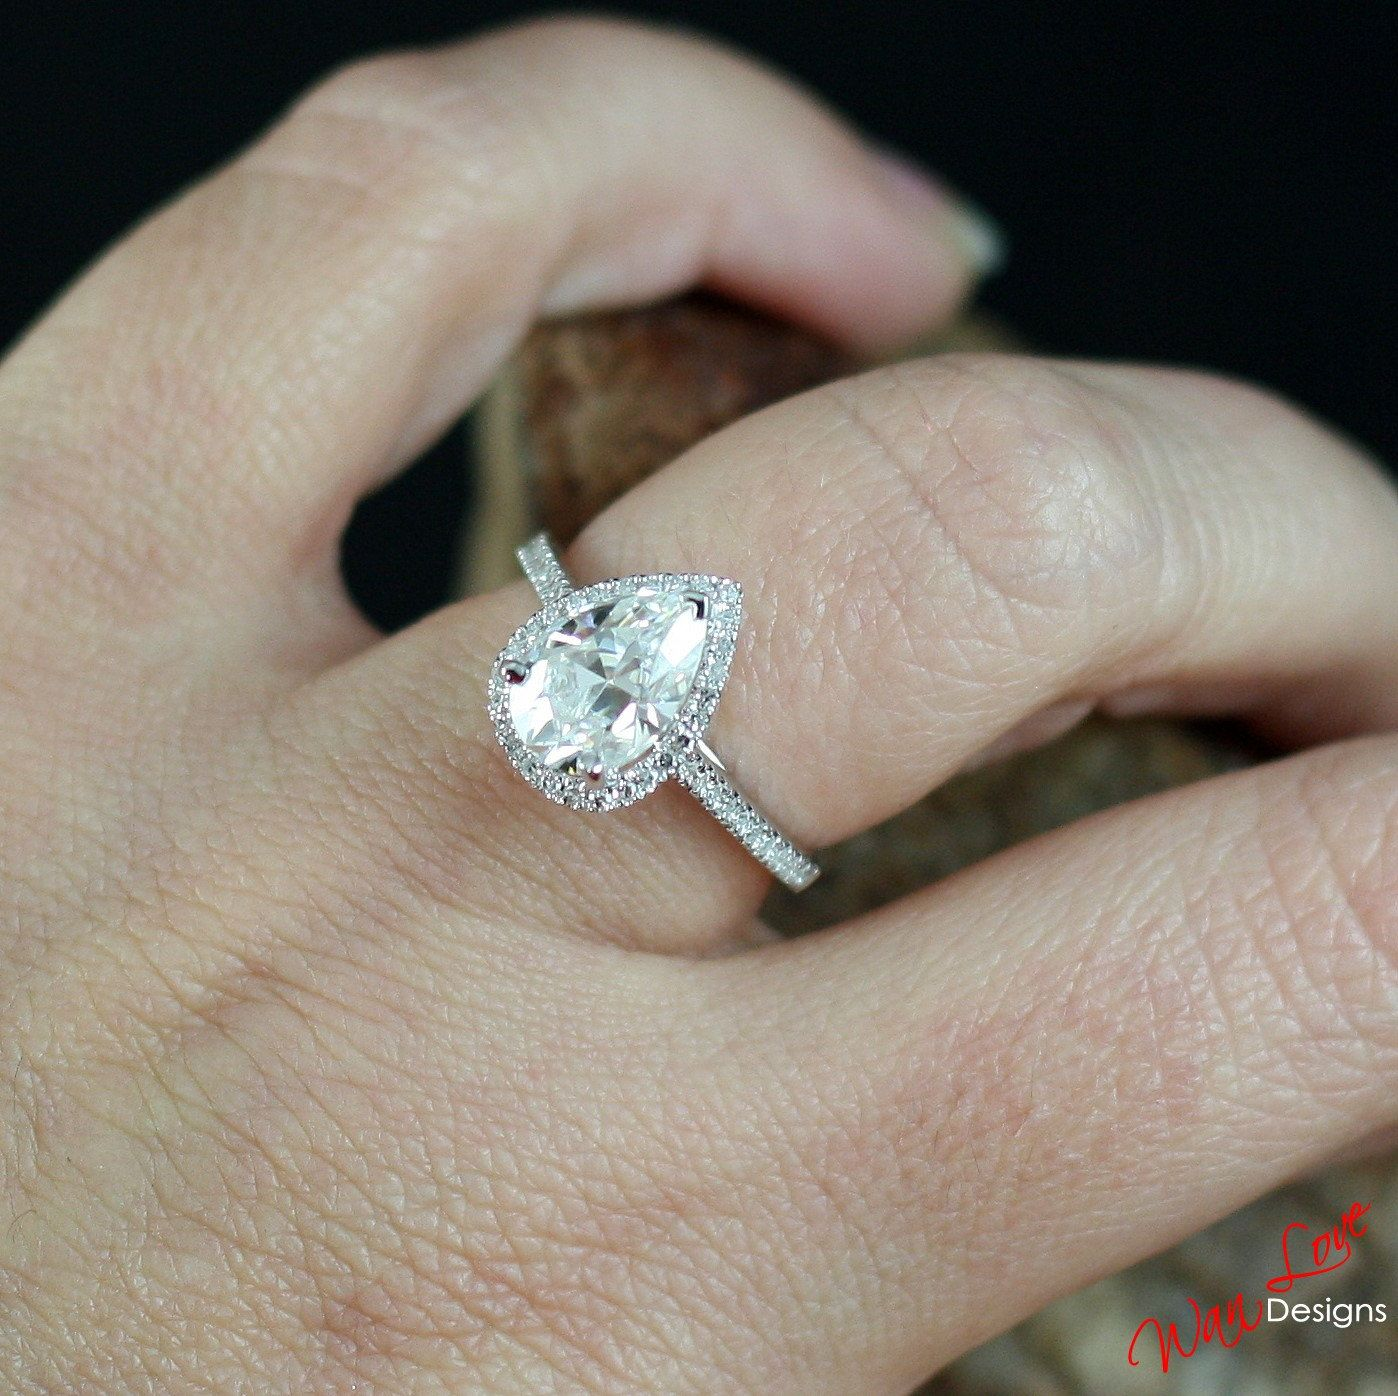 blog introducing bands moissanite band eternity wedding jewelry platinum engagement